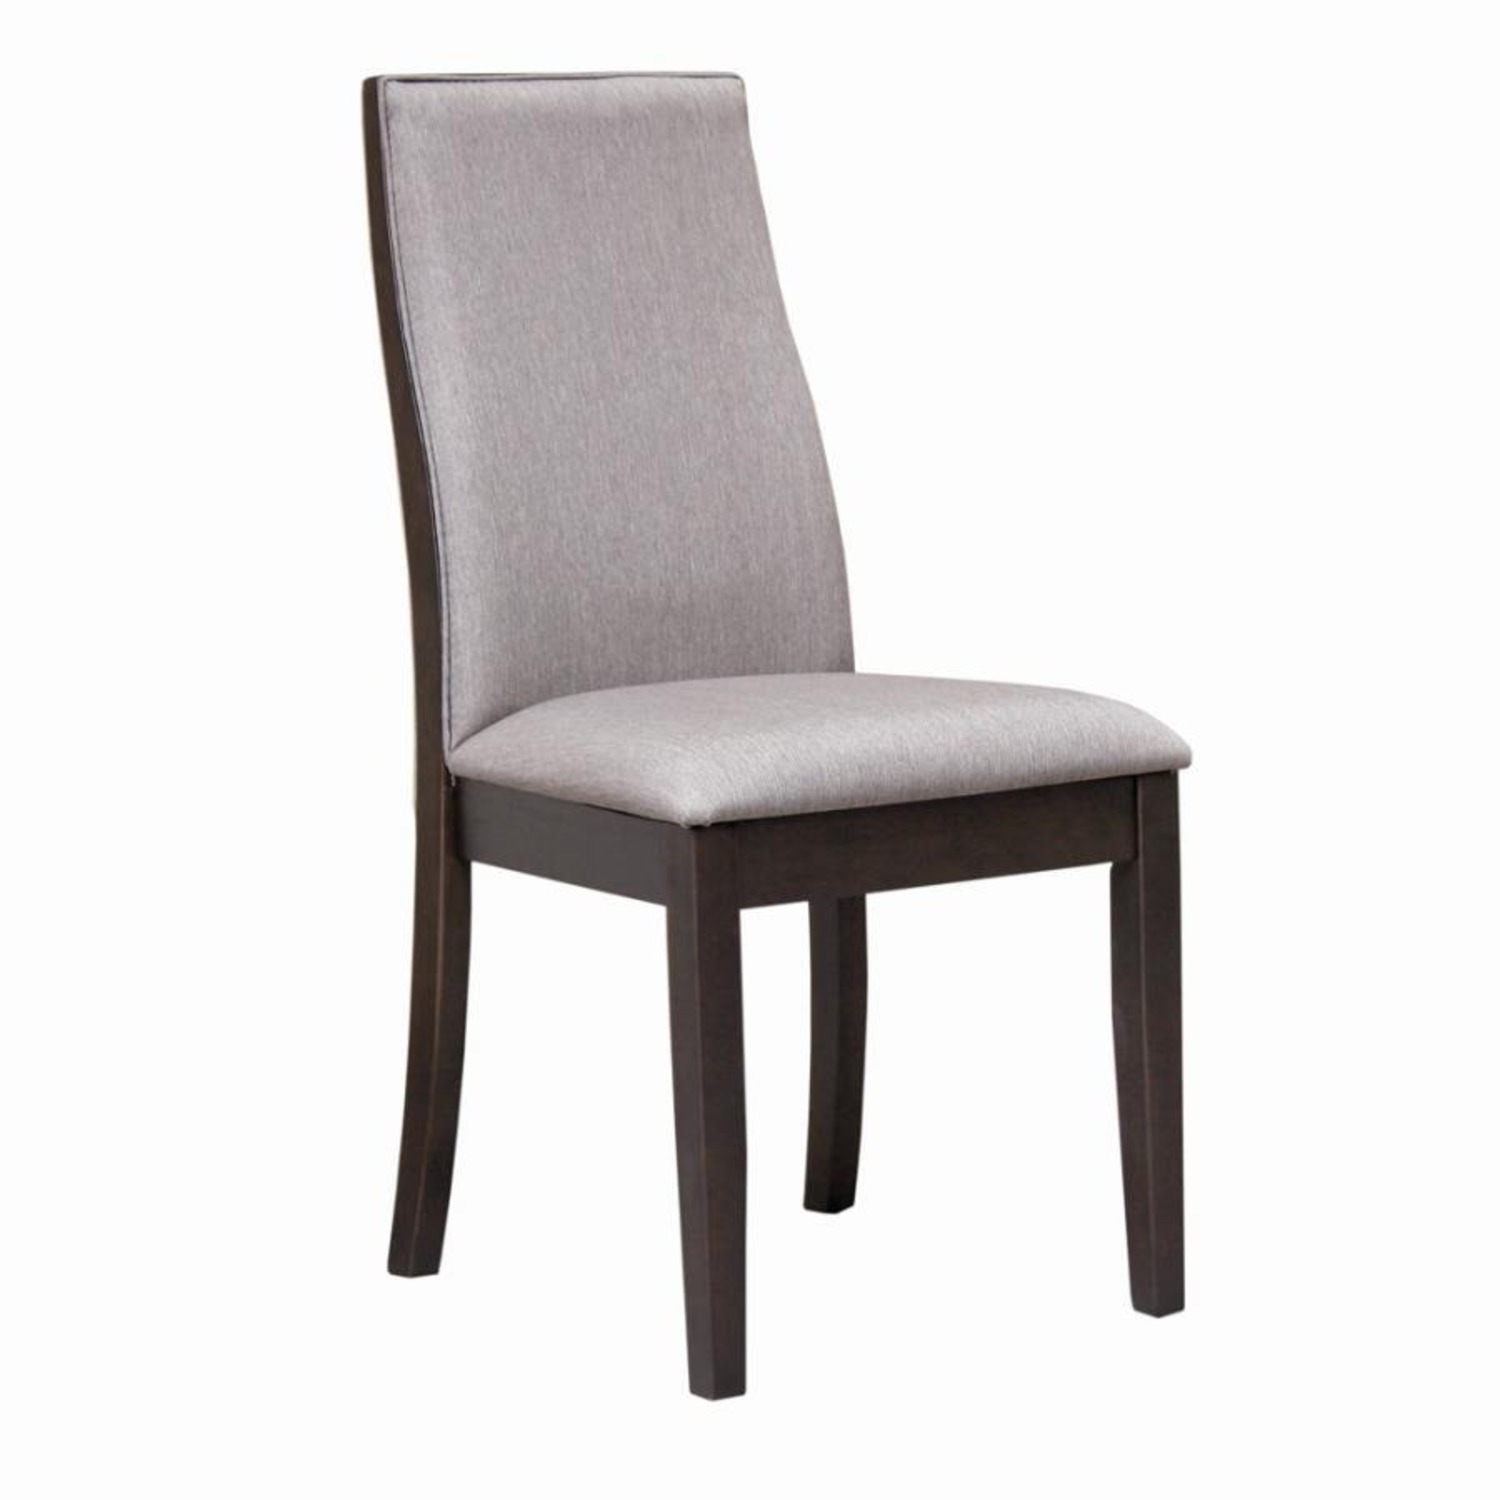 Dining Chair In Grey Fabric & Espresso Wood Finish - image-0